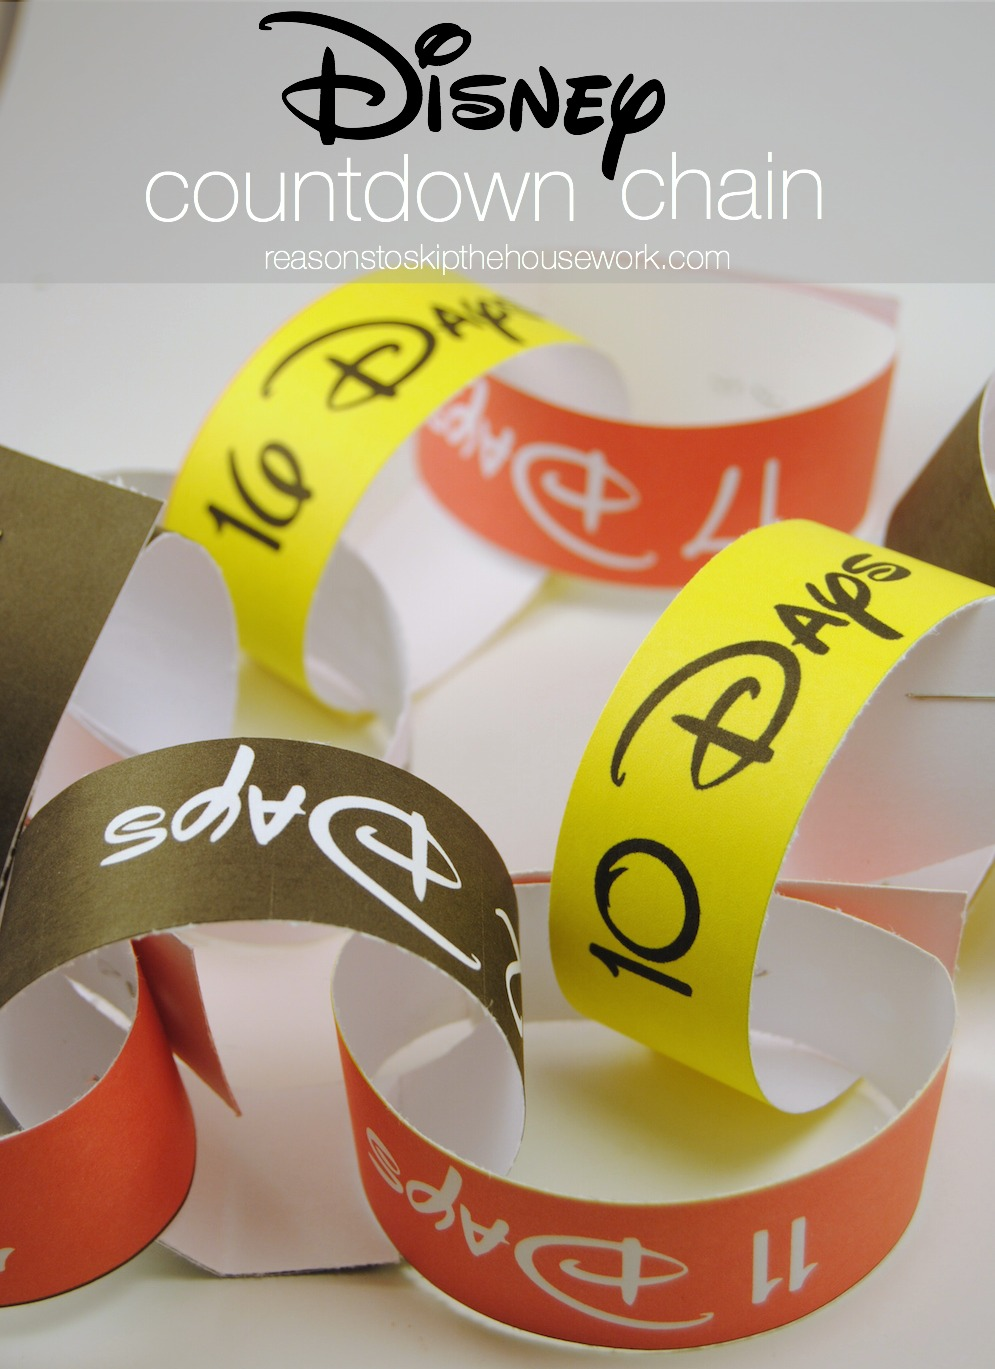 Disney Countdown Chain from www.reasonstoskipthehousework.com